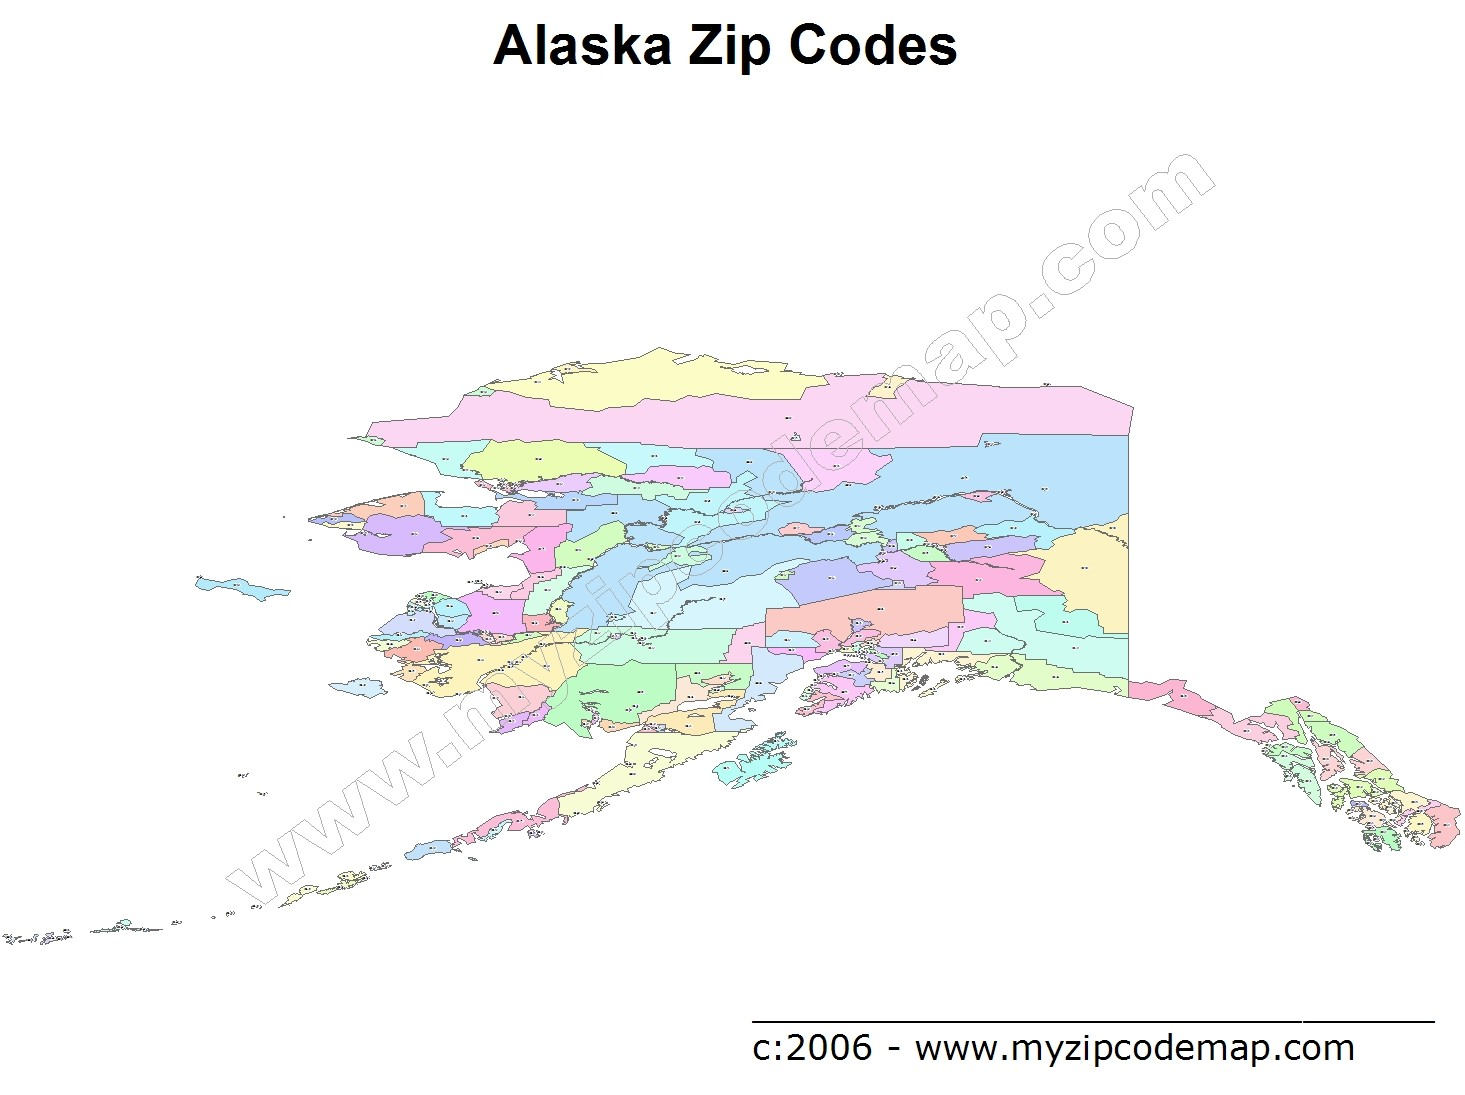 Alaska (AK) Zip Code Map